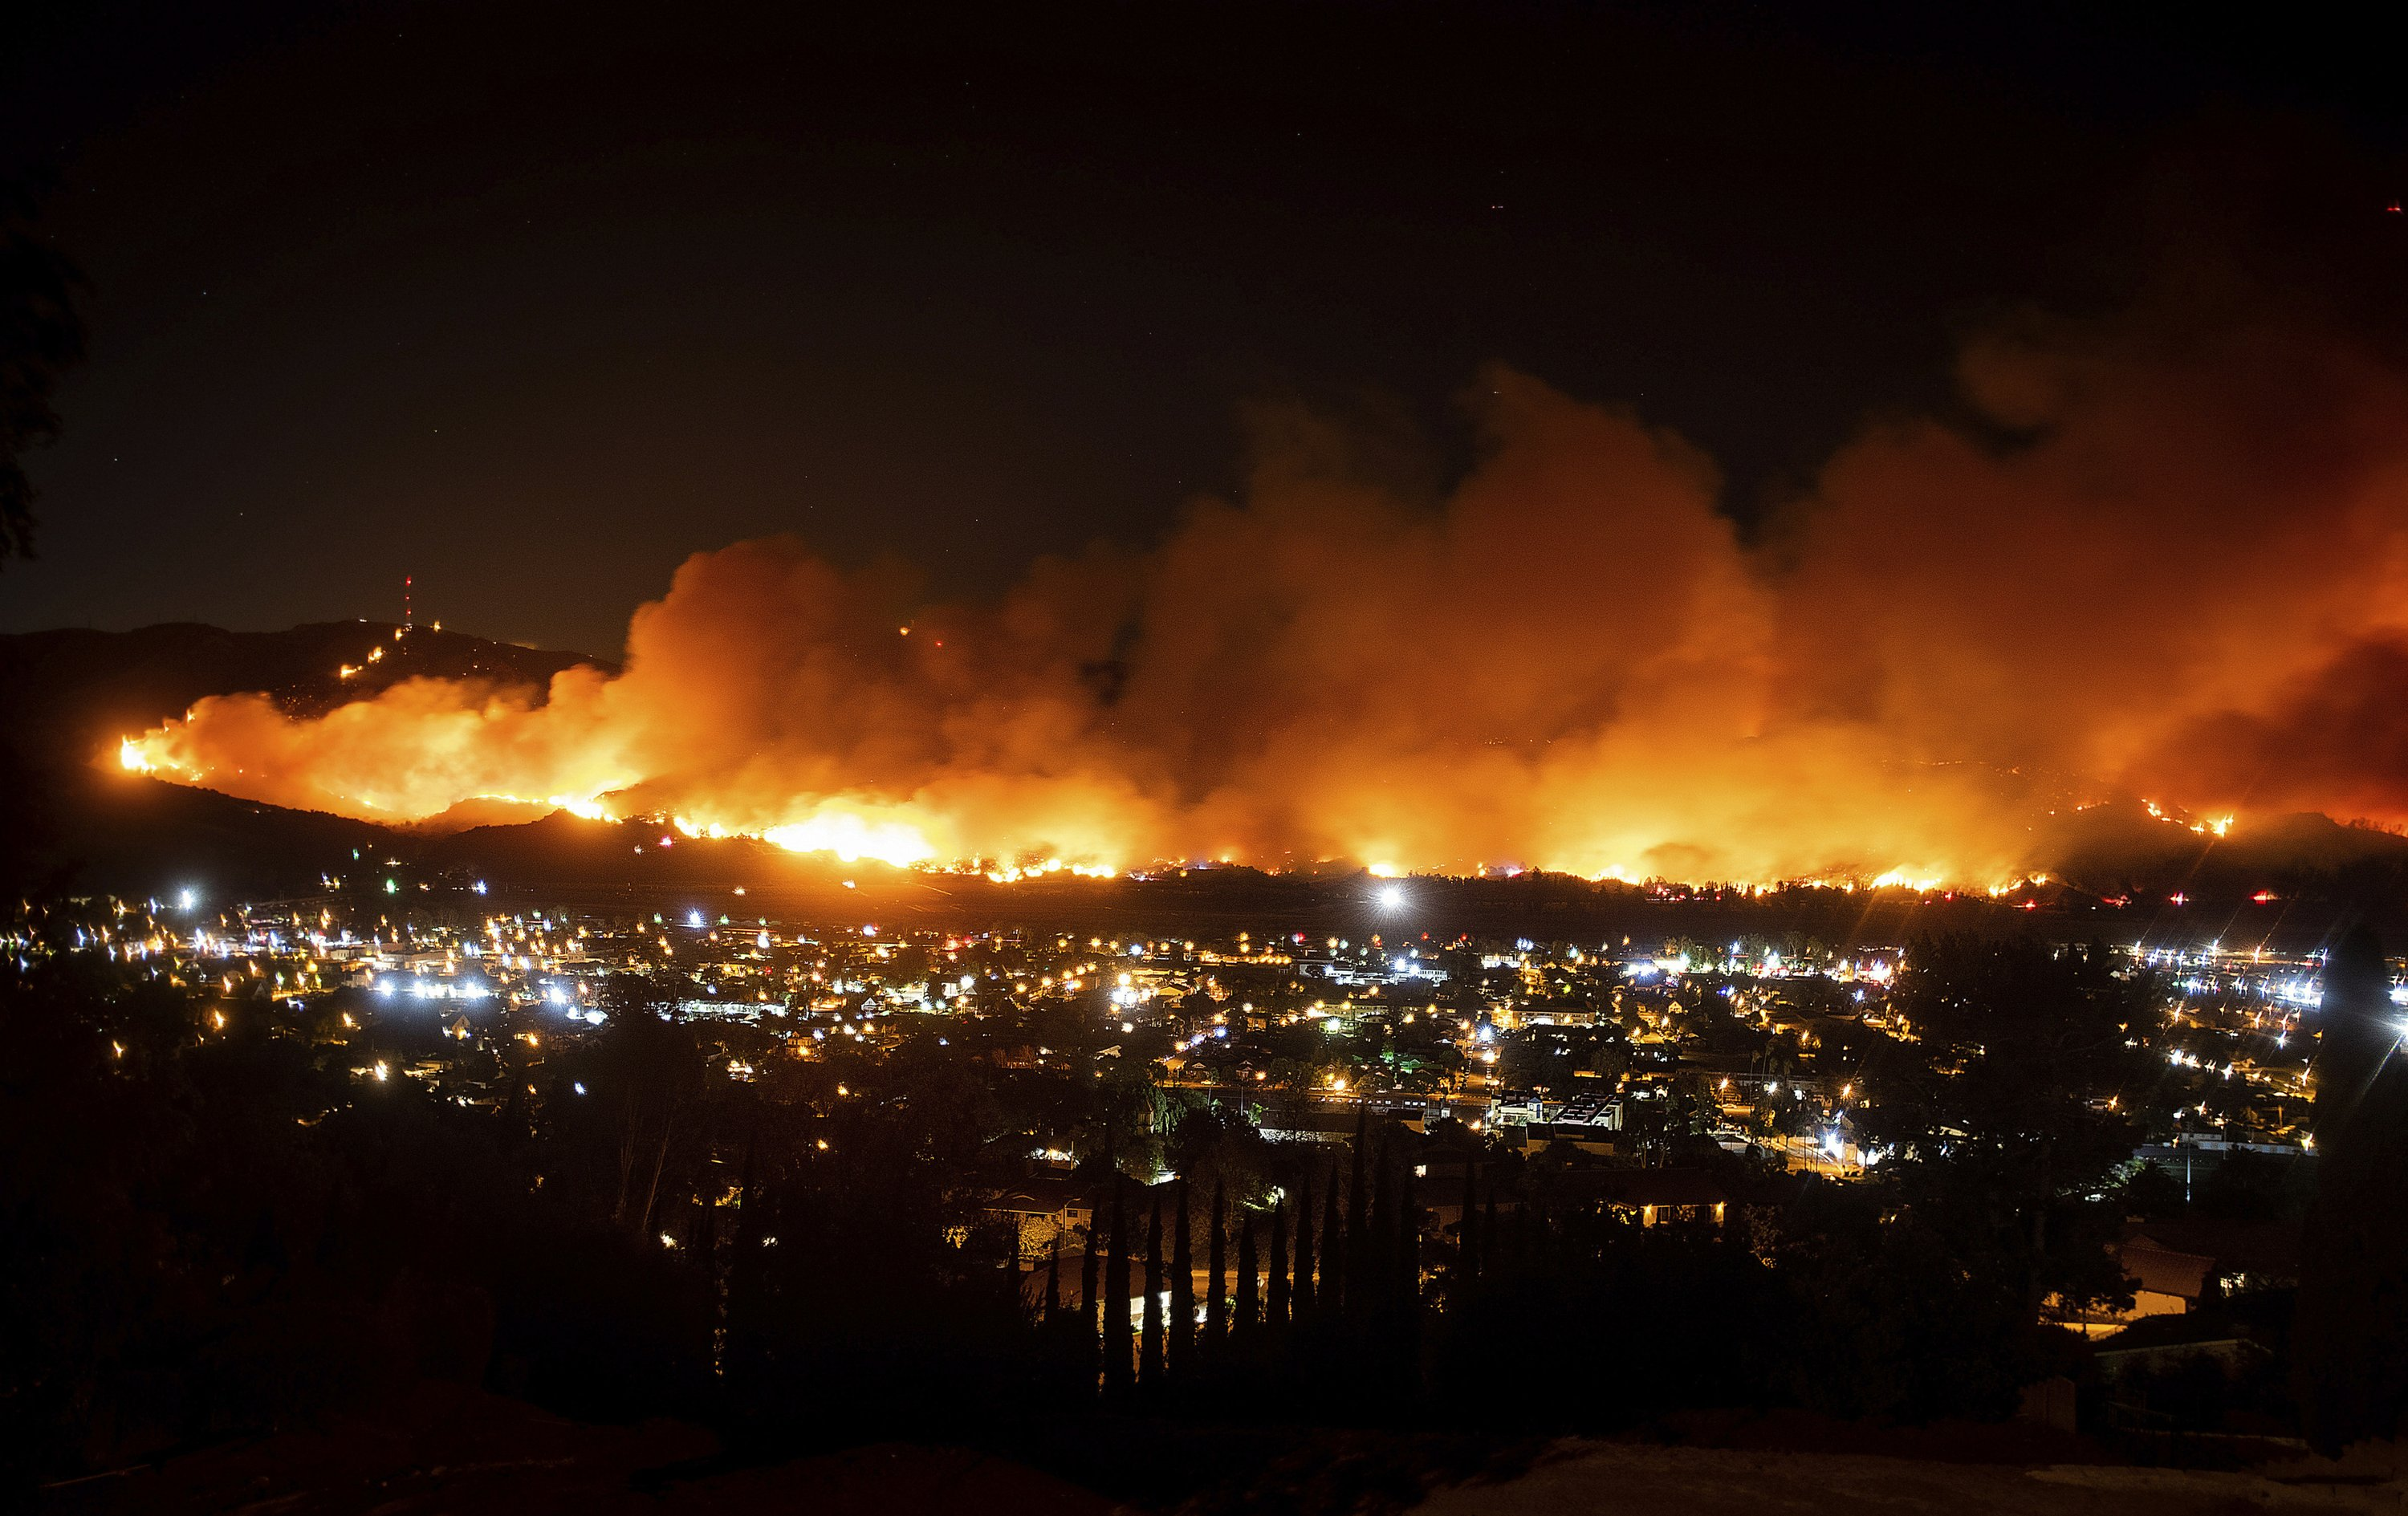 PG&E says blackouts limited fires despite 1 likely failure